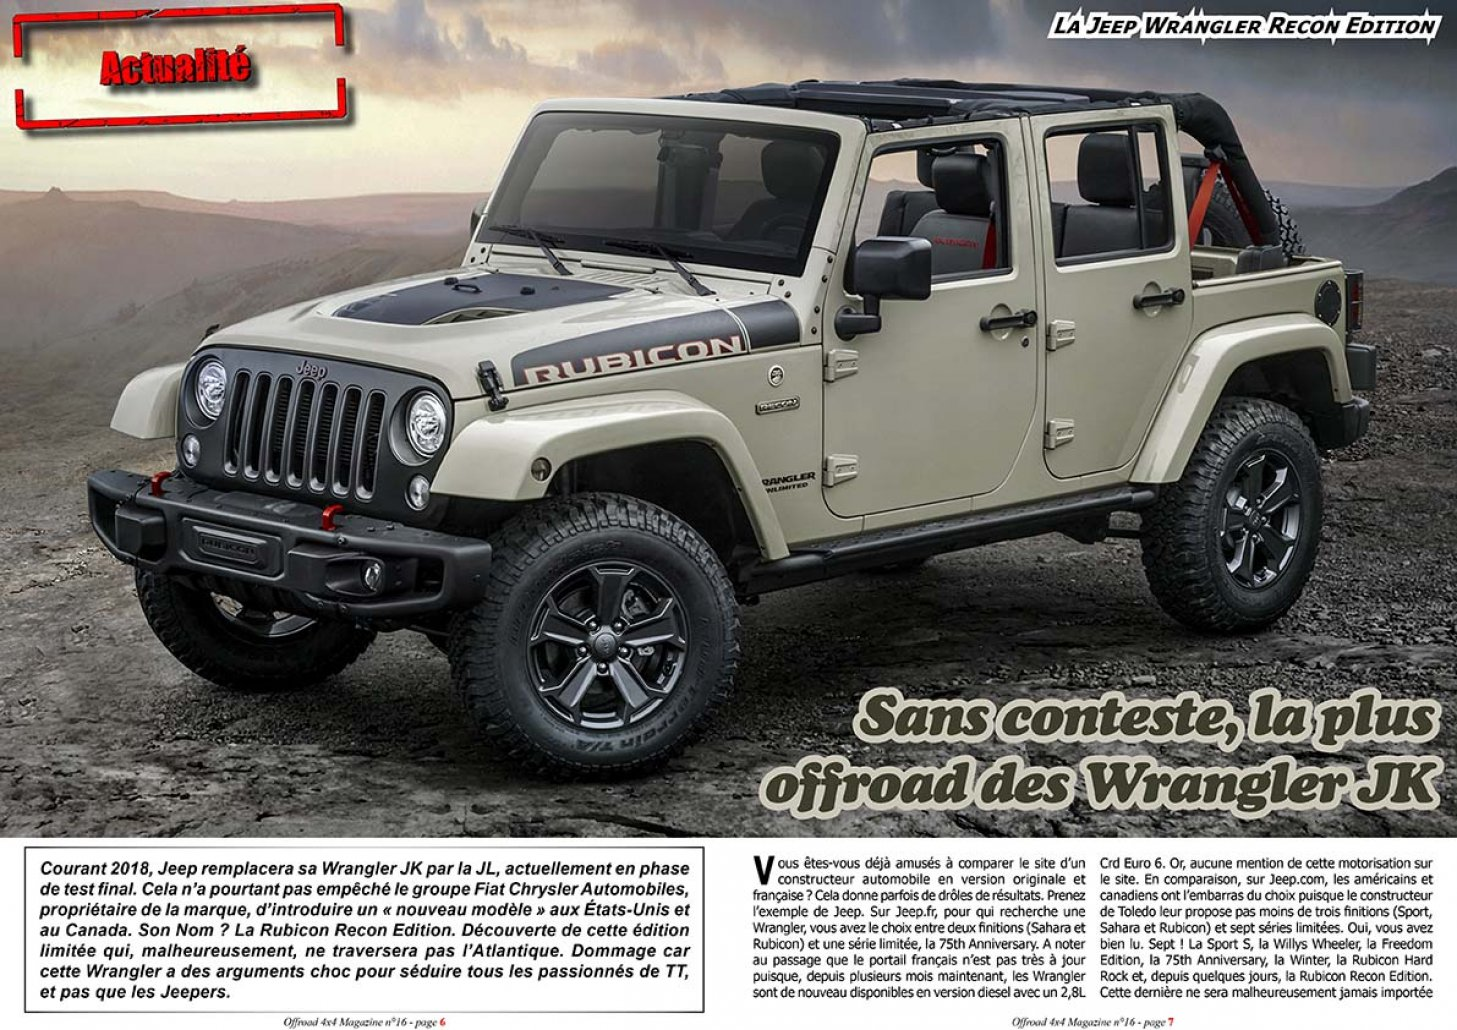 La Jeep Wrangler Recon Edition